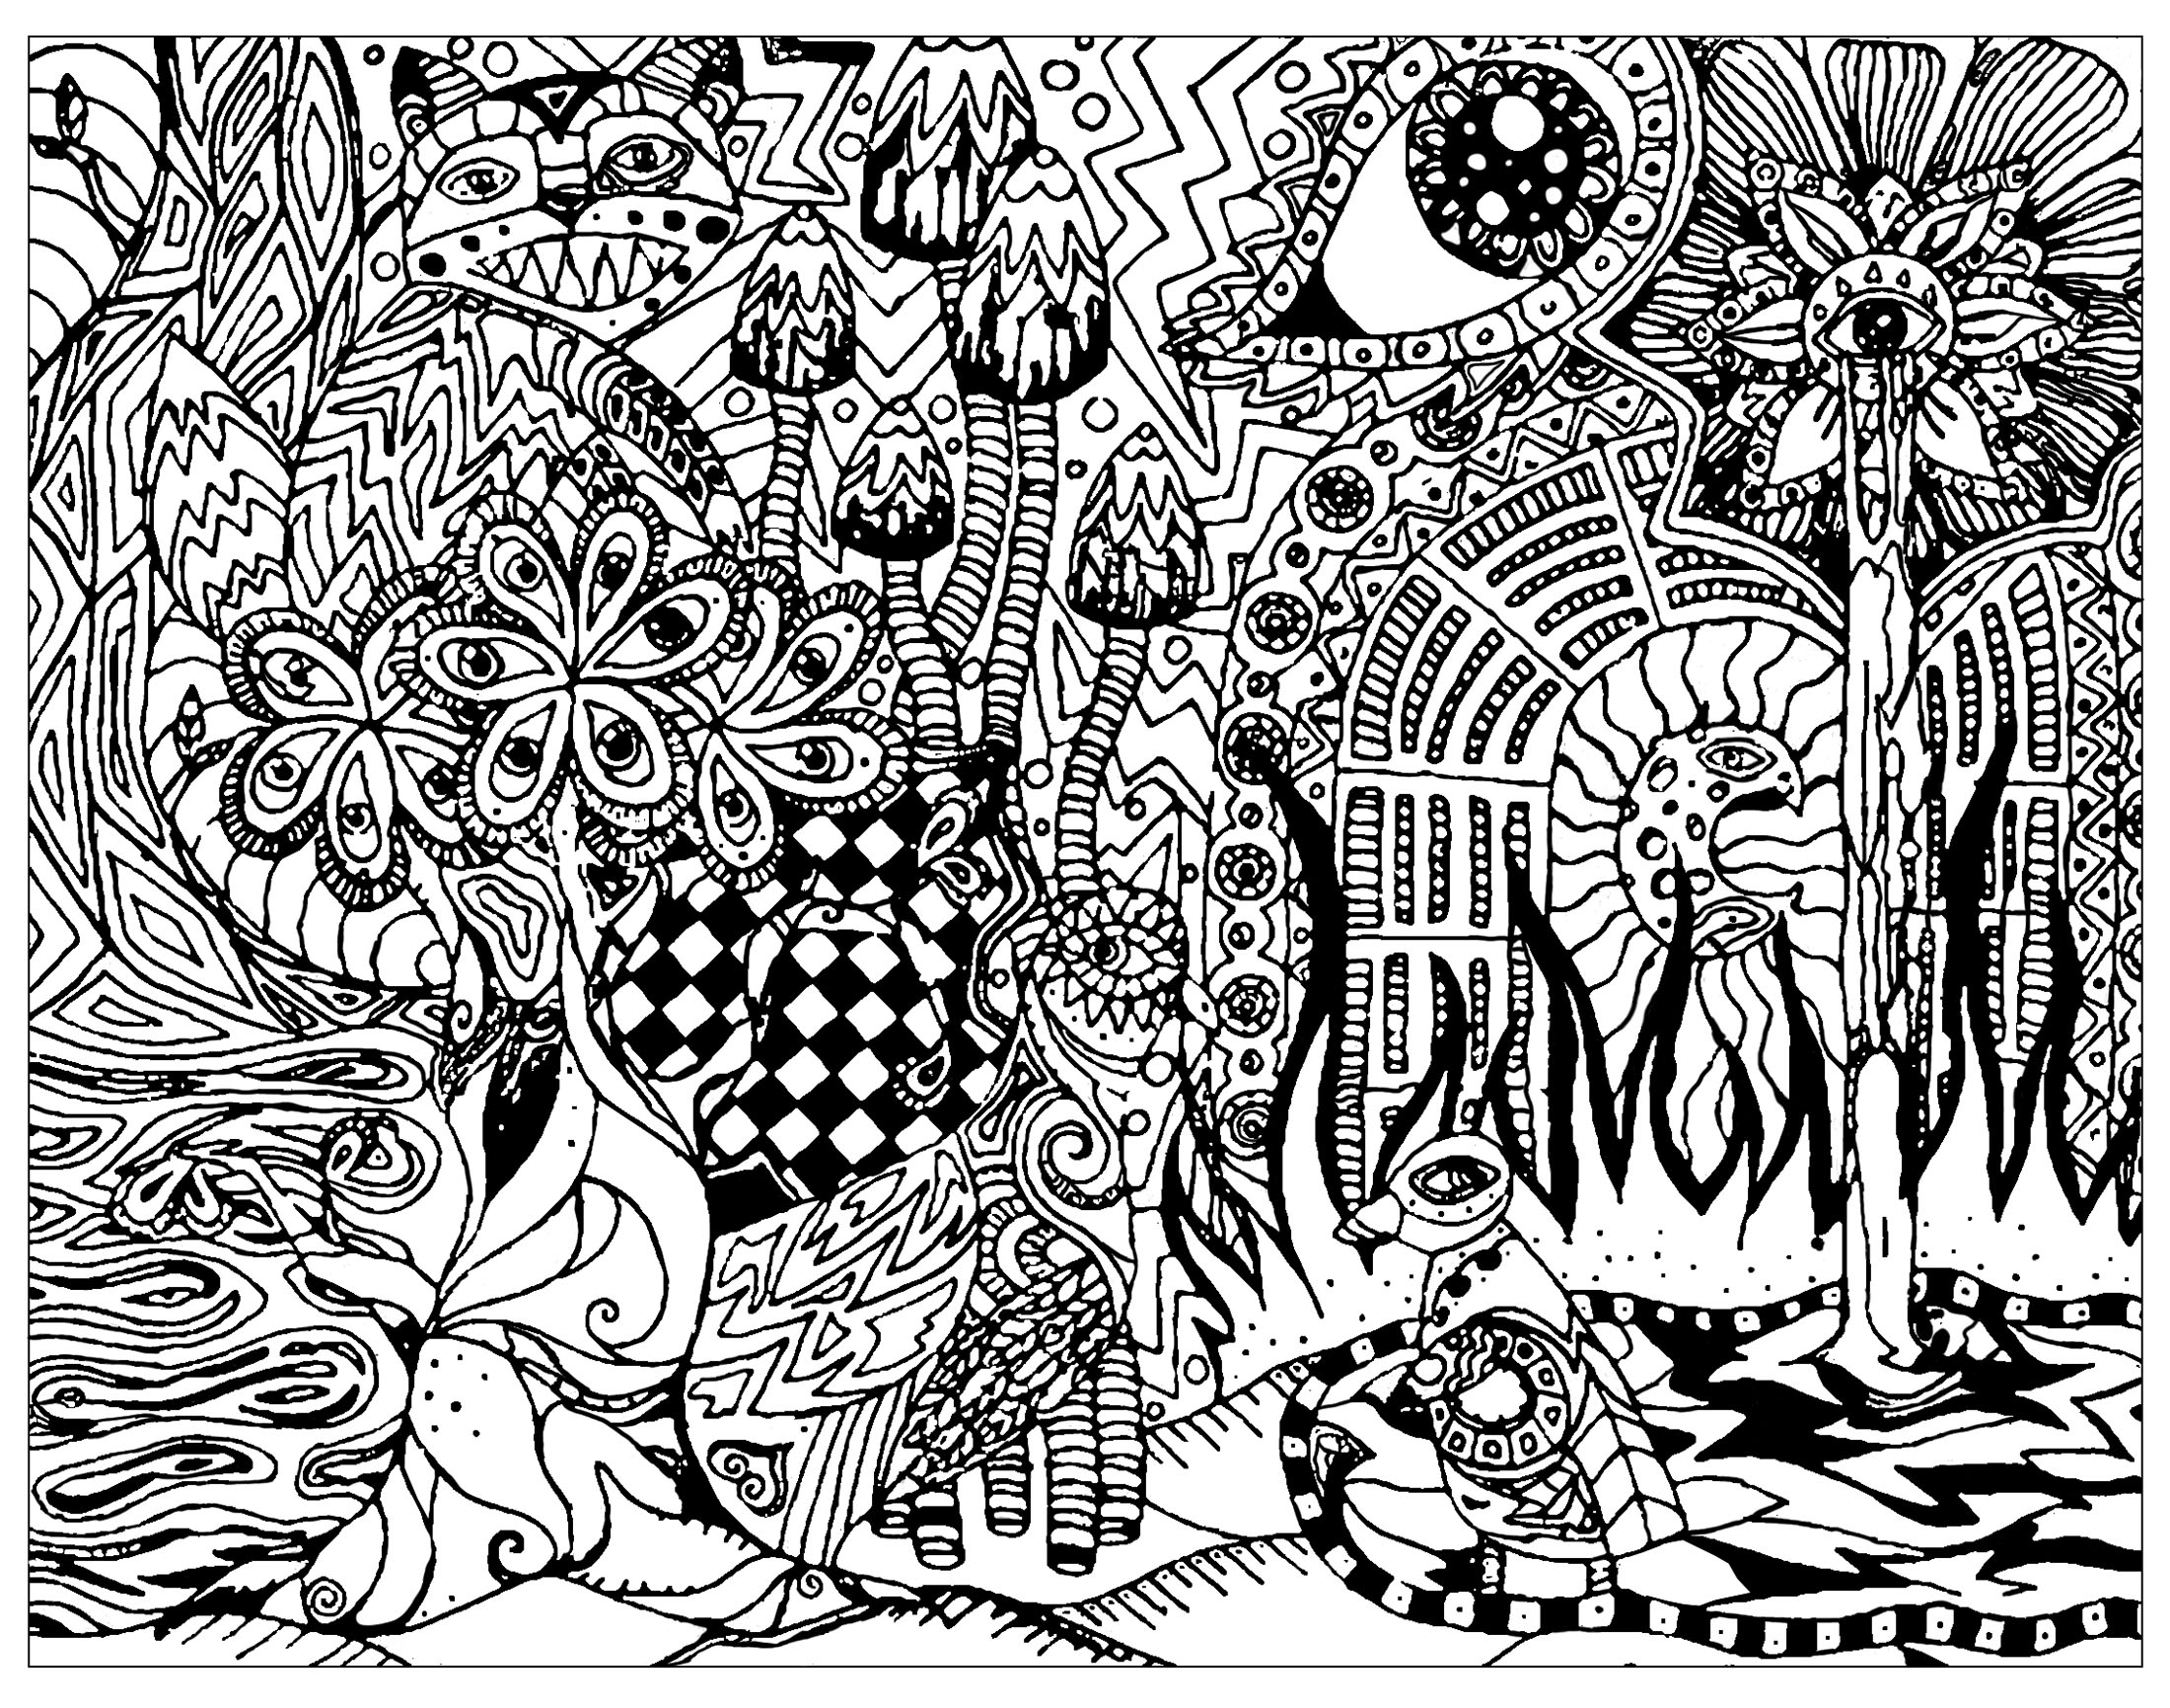 - Psychedelic Patterns Hidden Cat - Psychedelic Adult Coloring Pages